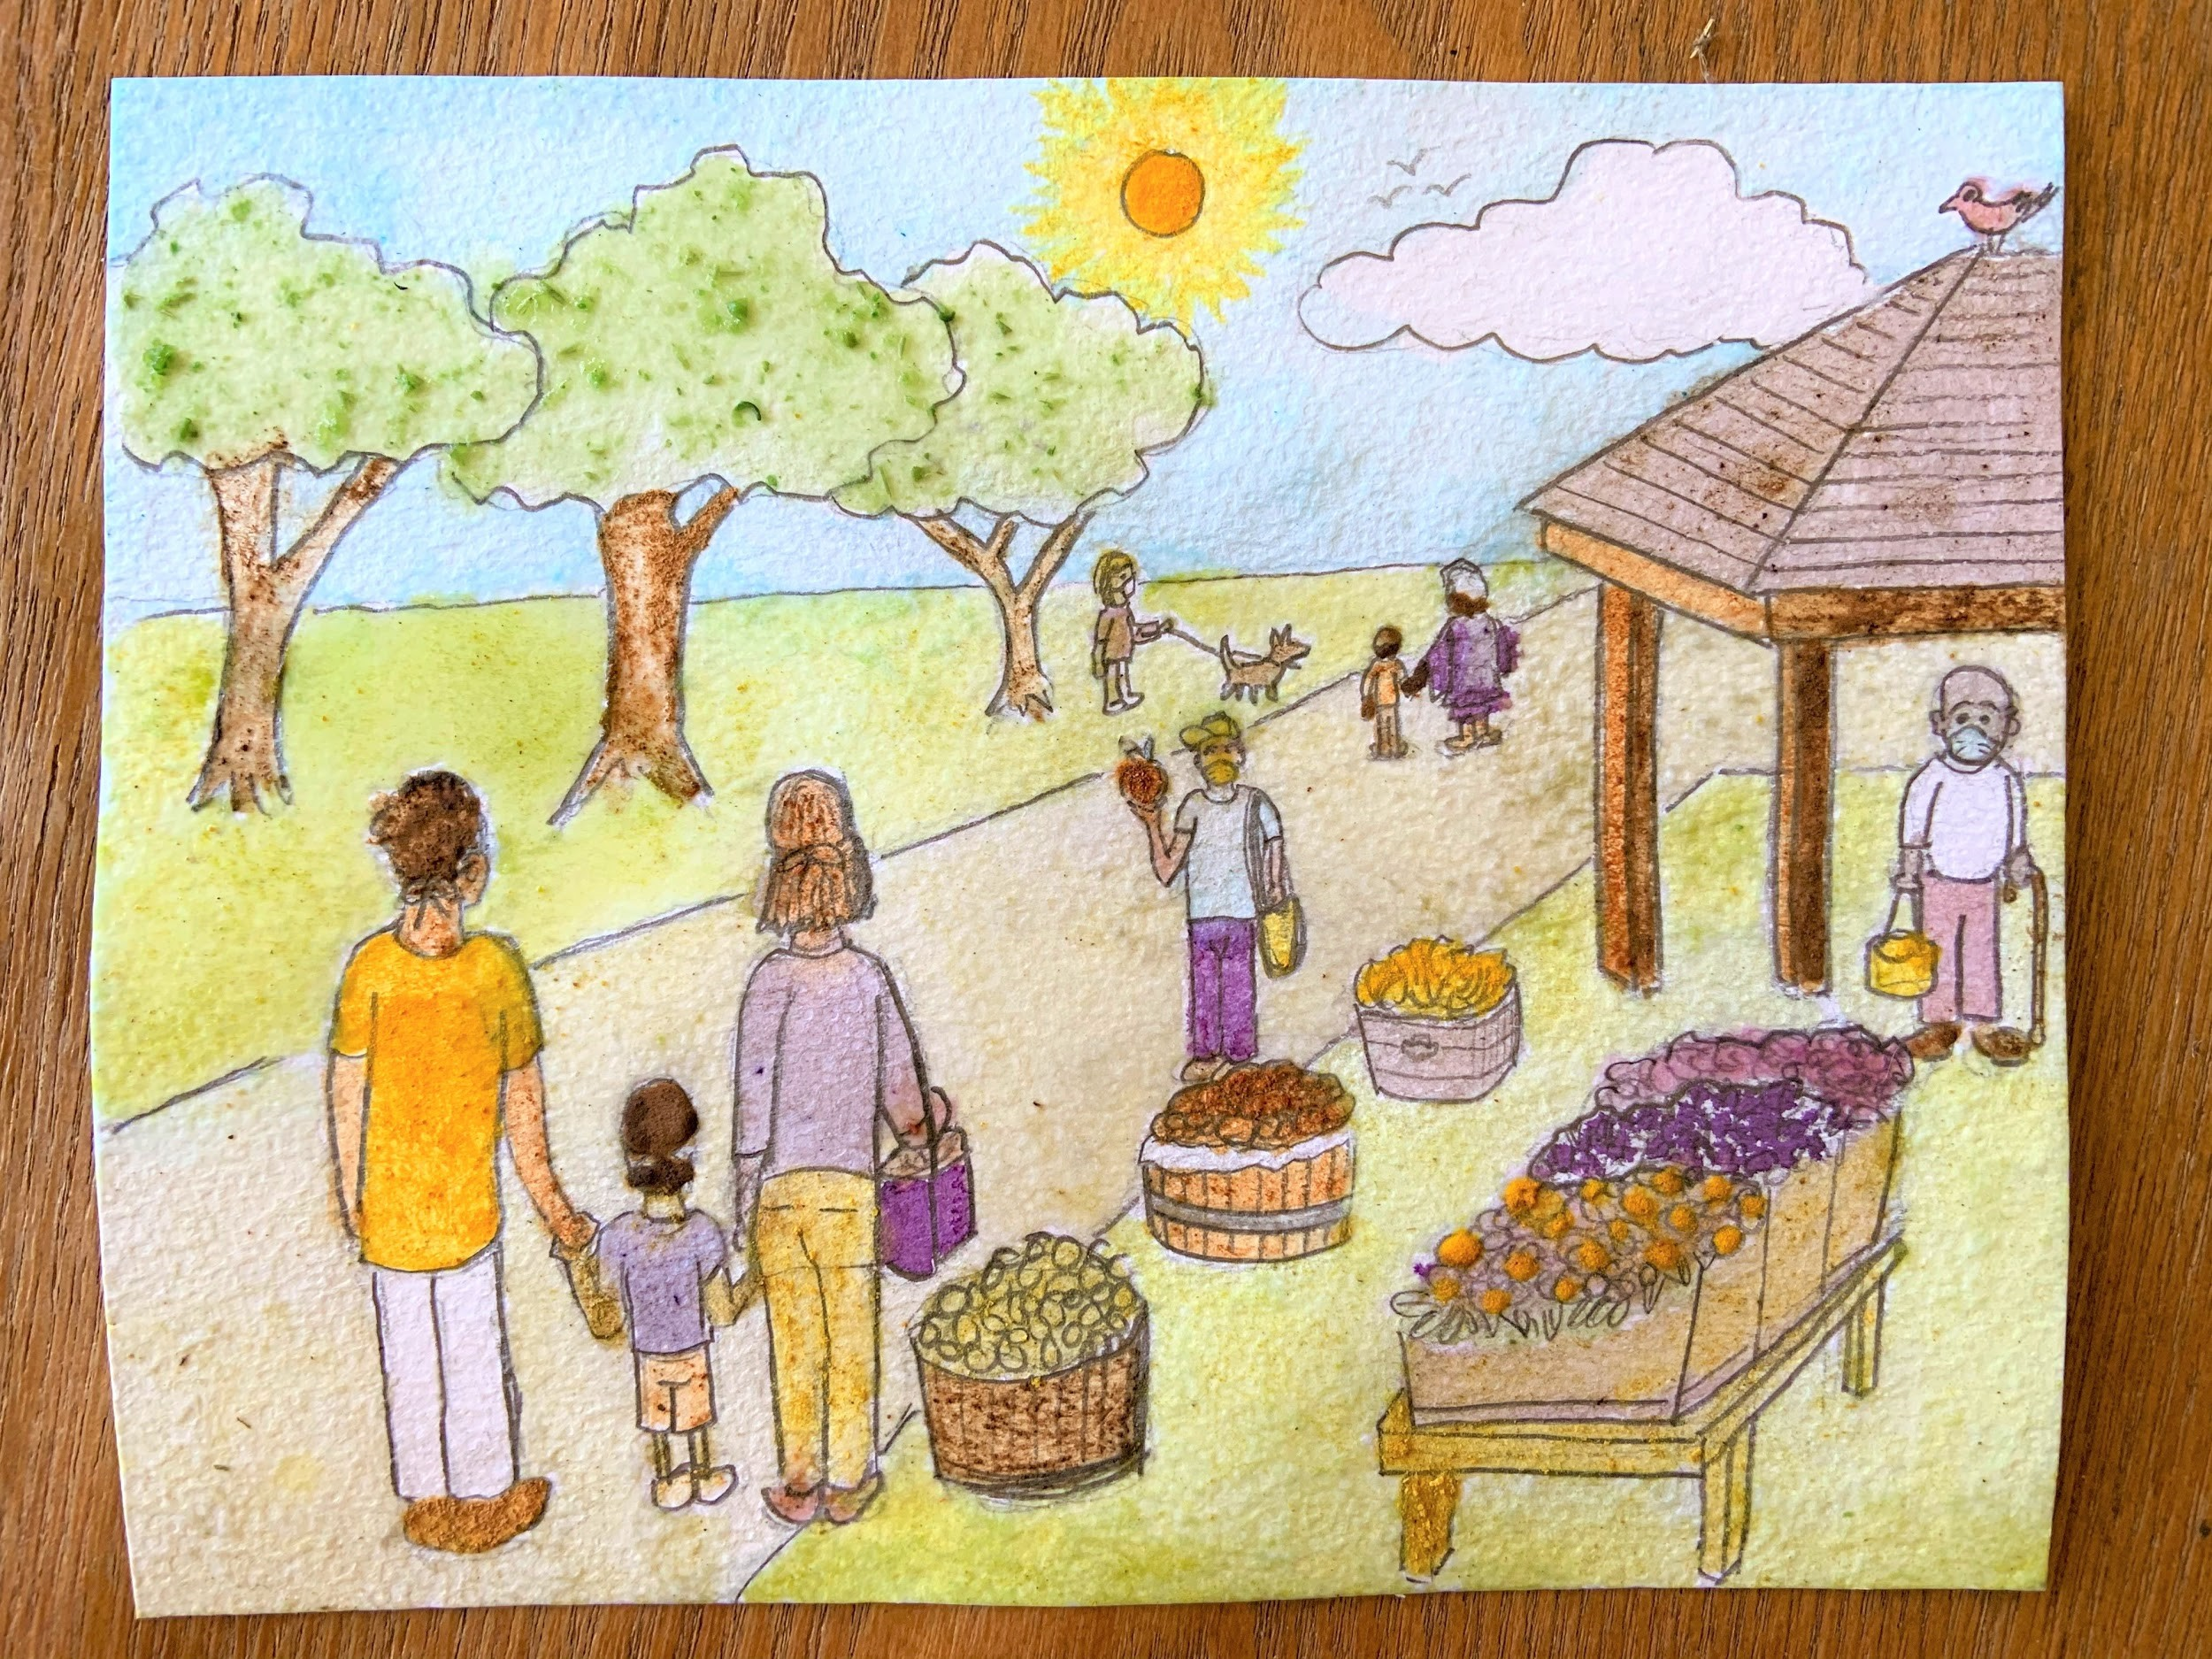 Colored-in sketch of a family at an outdoor market surrounded by fruit baskets